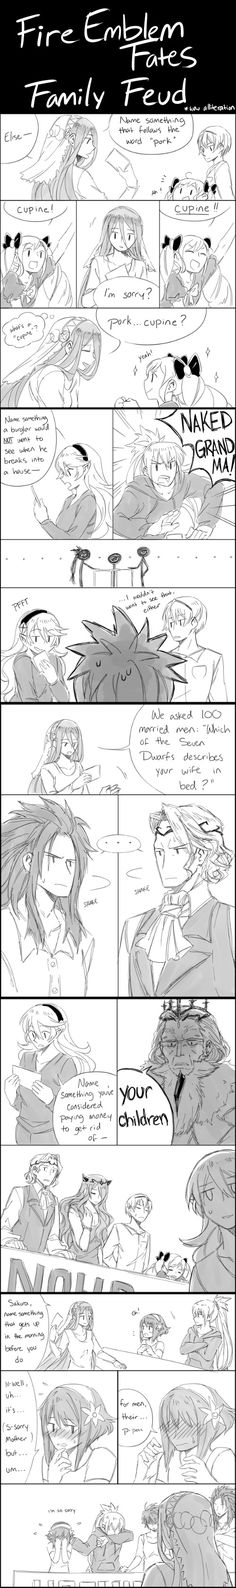 Fire Emblem Fates - Family Feud //I don't even know why I'm pinning this. I don't want to, but at the same time I feel like I have to. /)~(\